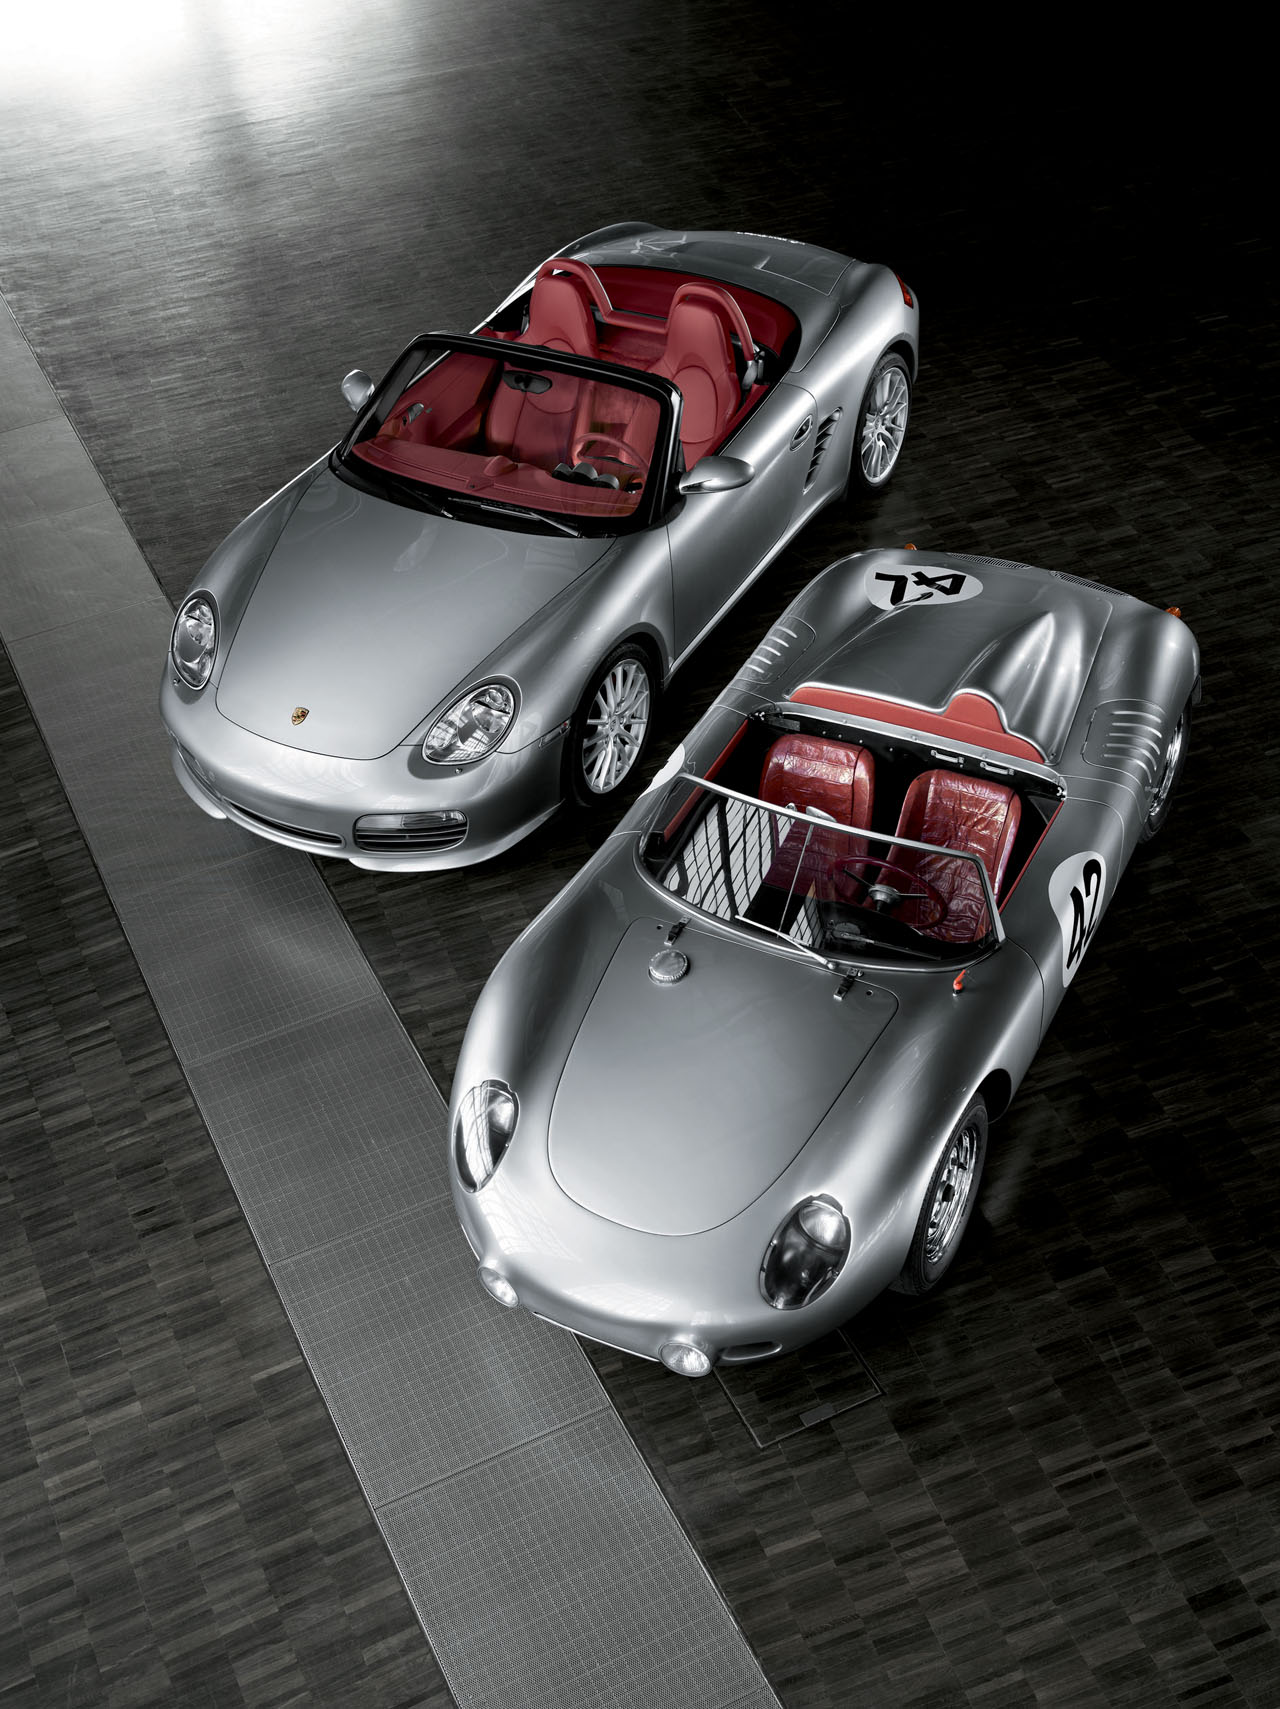 2008 Boxster Rs60 Spyder >> The New Porsche Boxster RS 60 Spyder | FLATSIXES